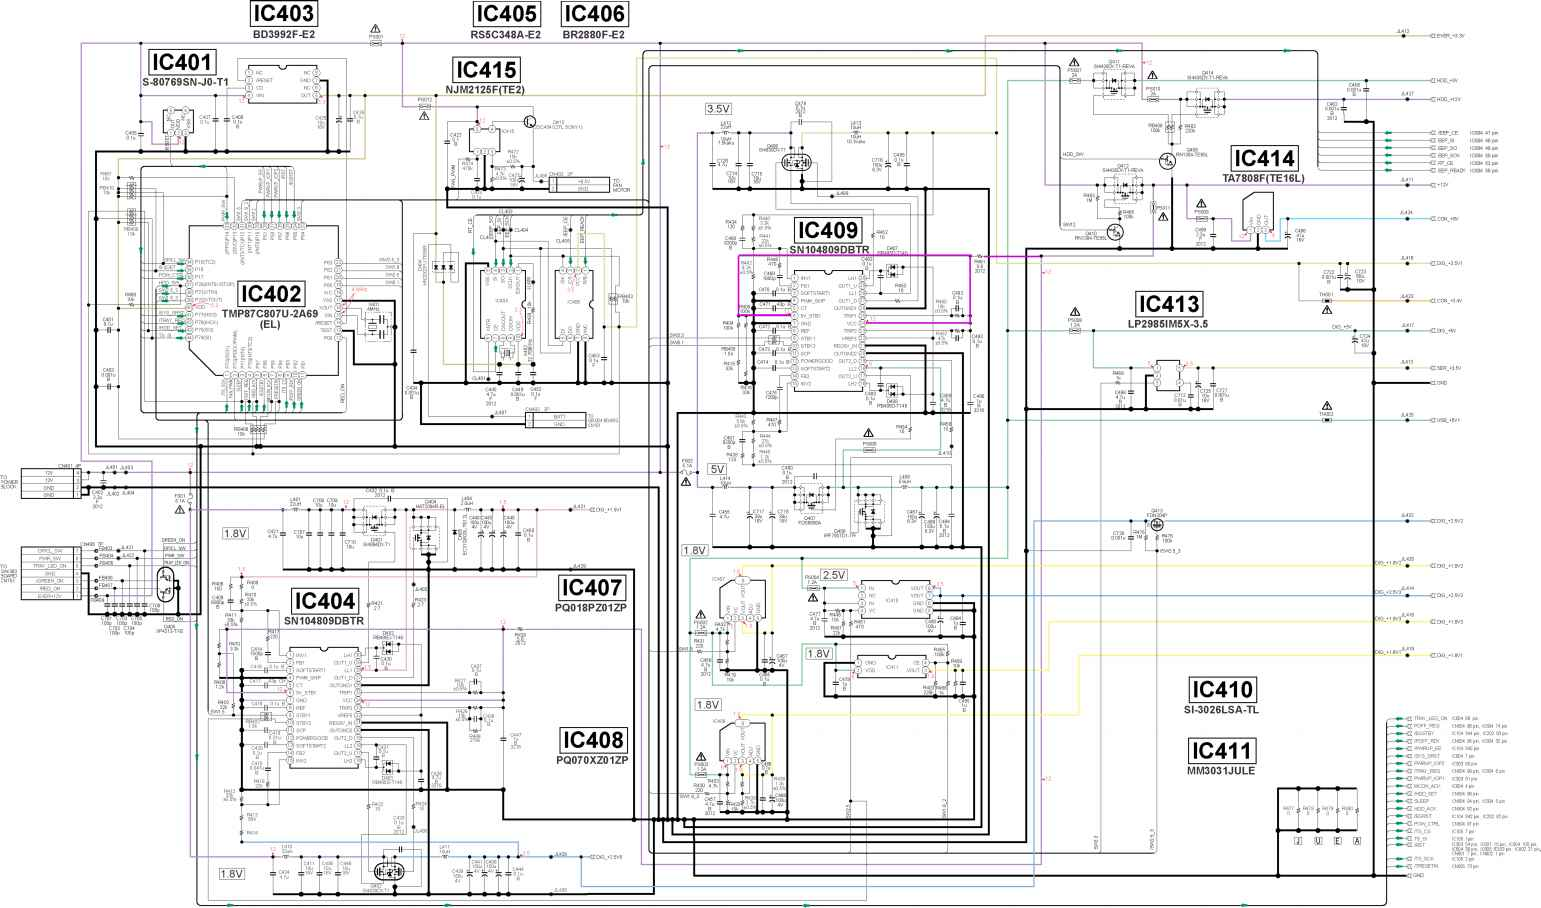 hight resolution of  1700 15 13 scph 1000 schematic xbox 360 wiring diagram the wiring diagram readingrat net xbox 360 power